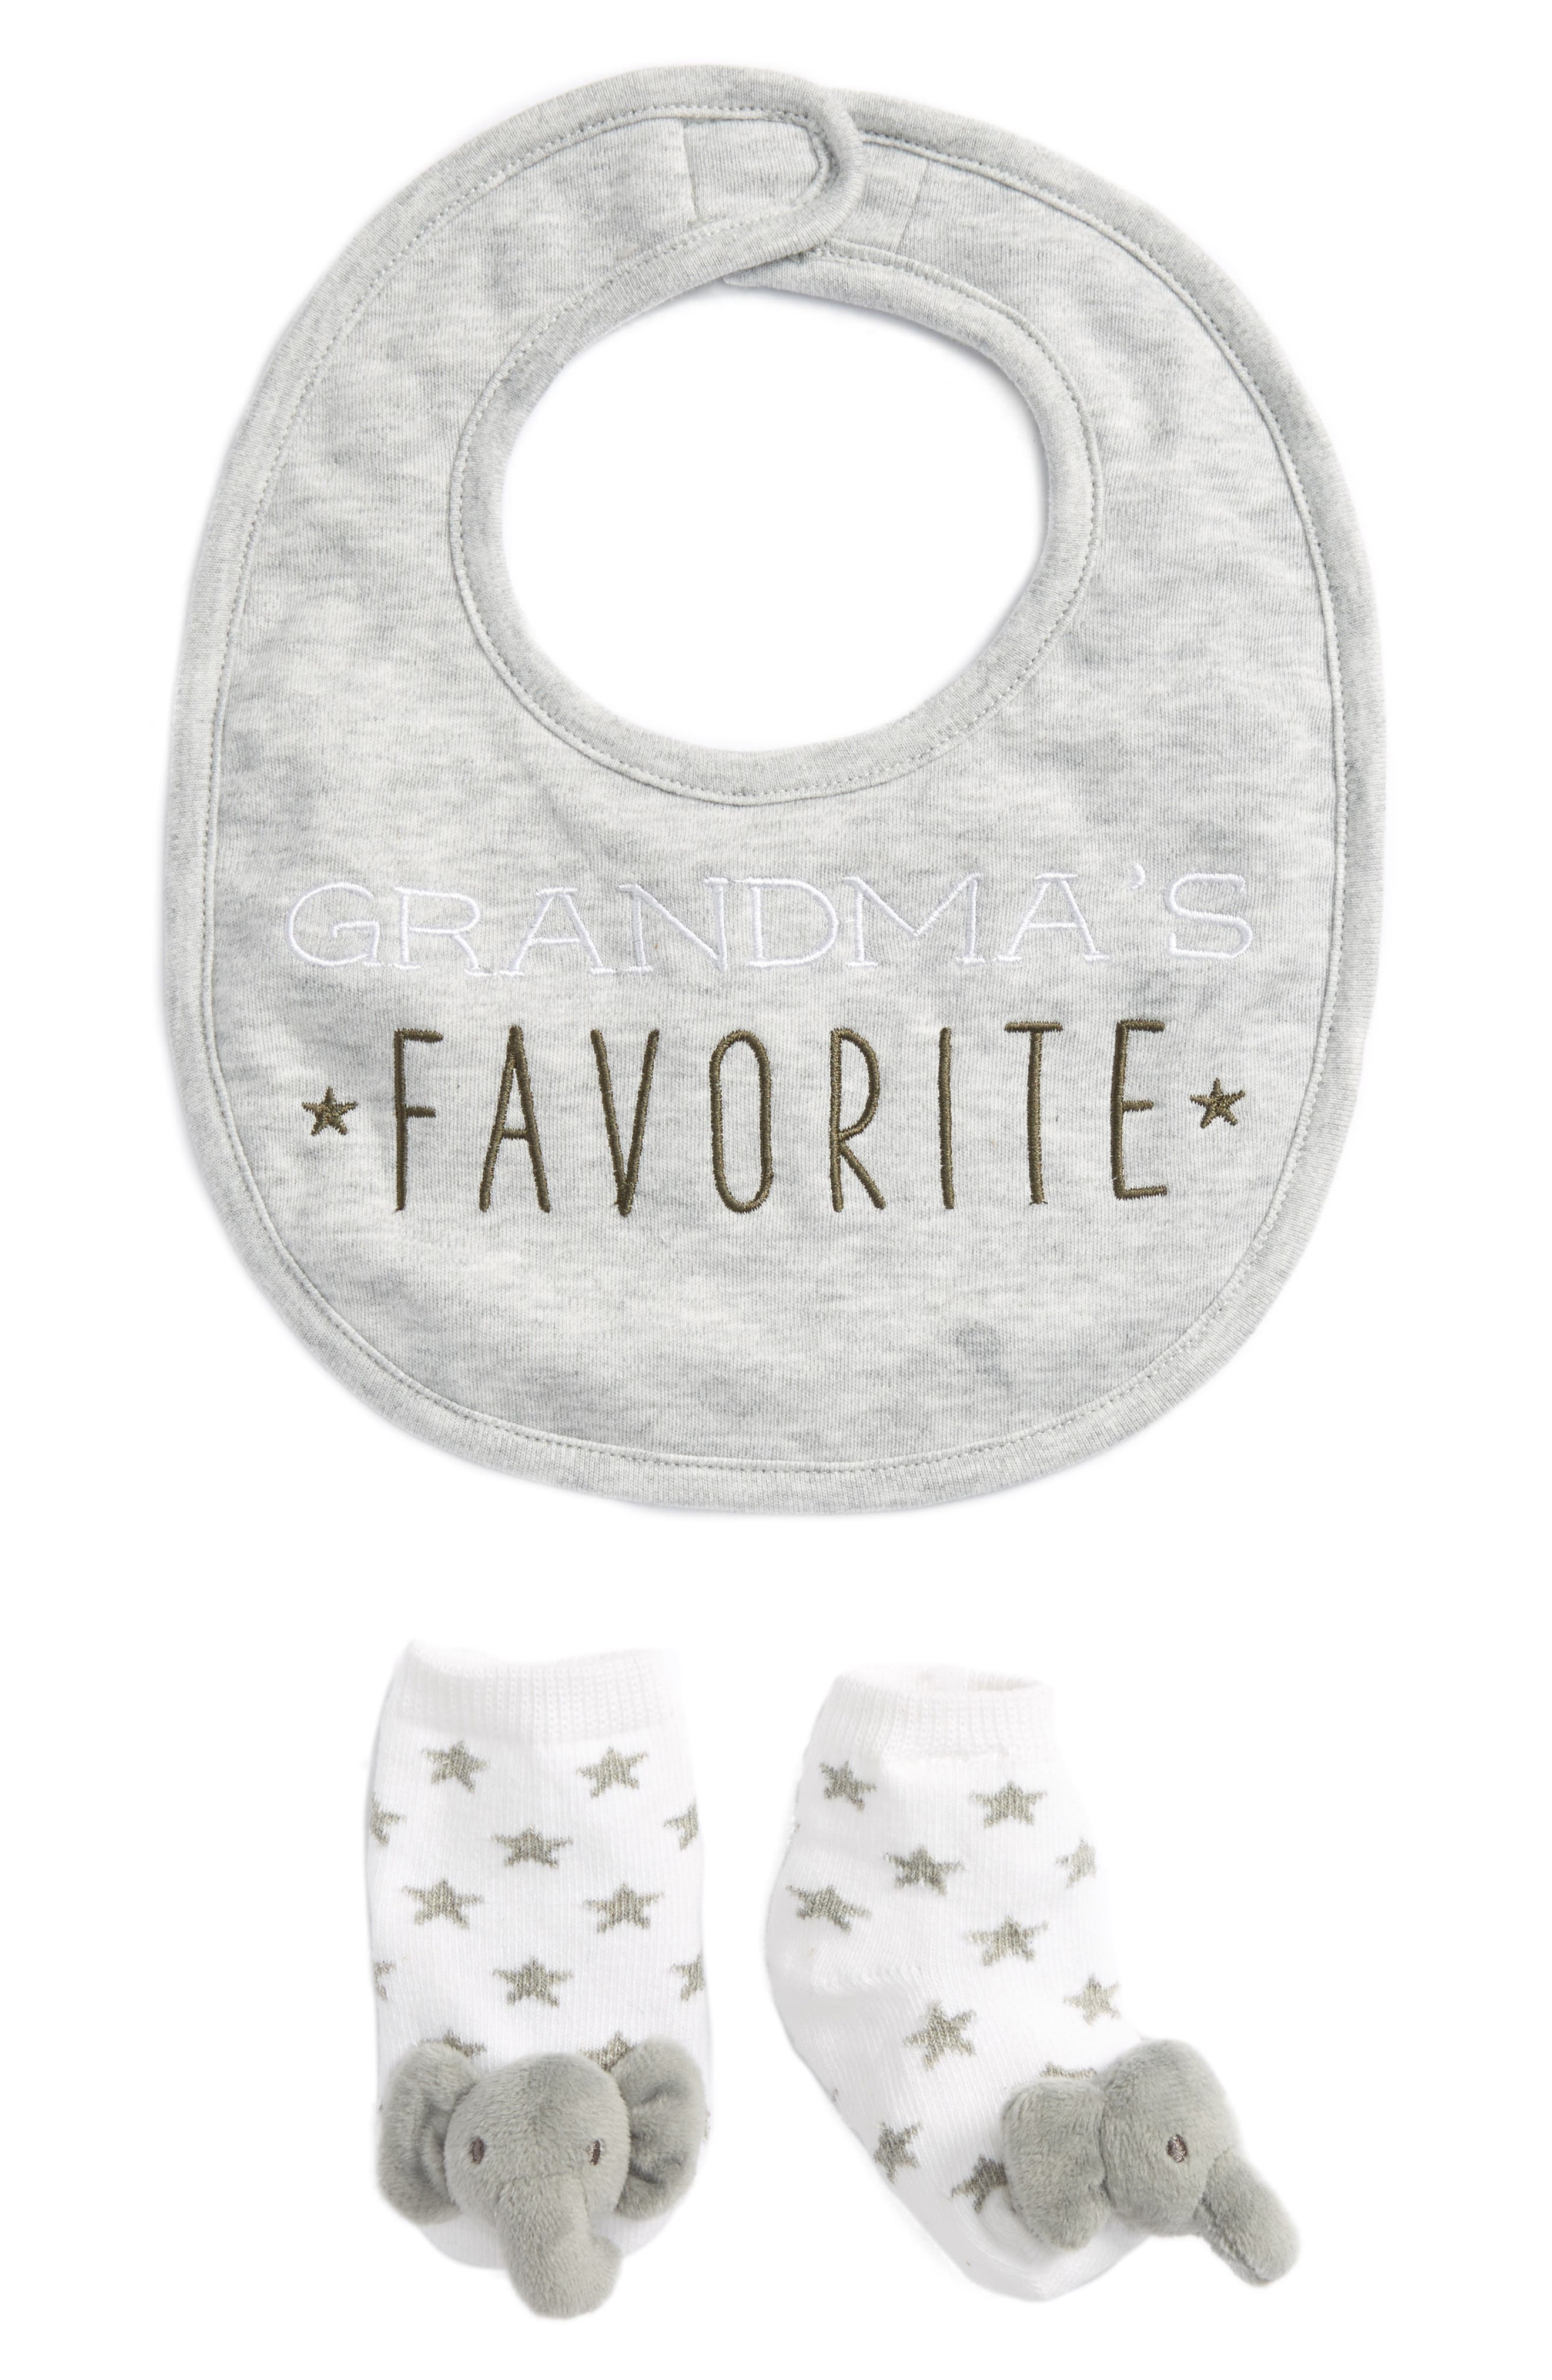 Grandma's Favorite Bib & Socks Set,                         Main,                         color, 020